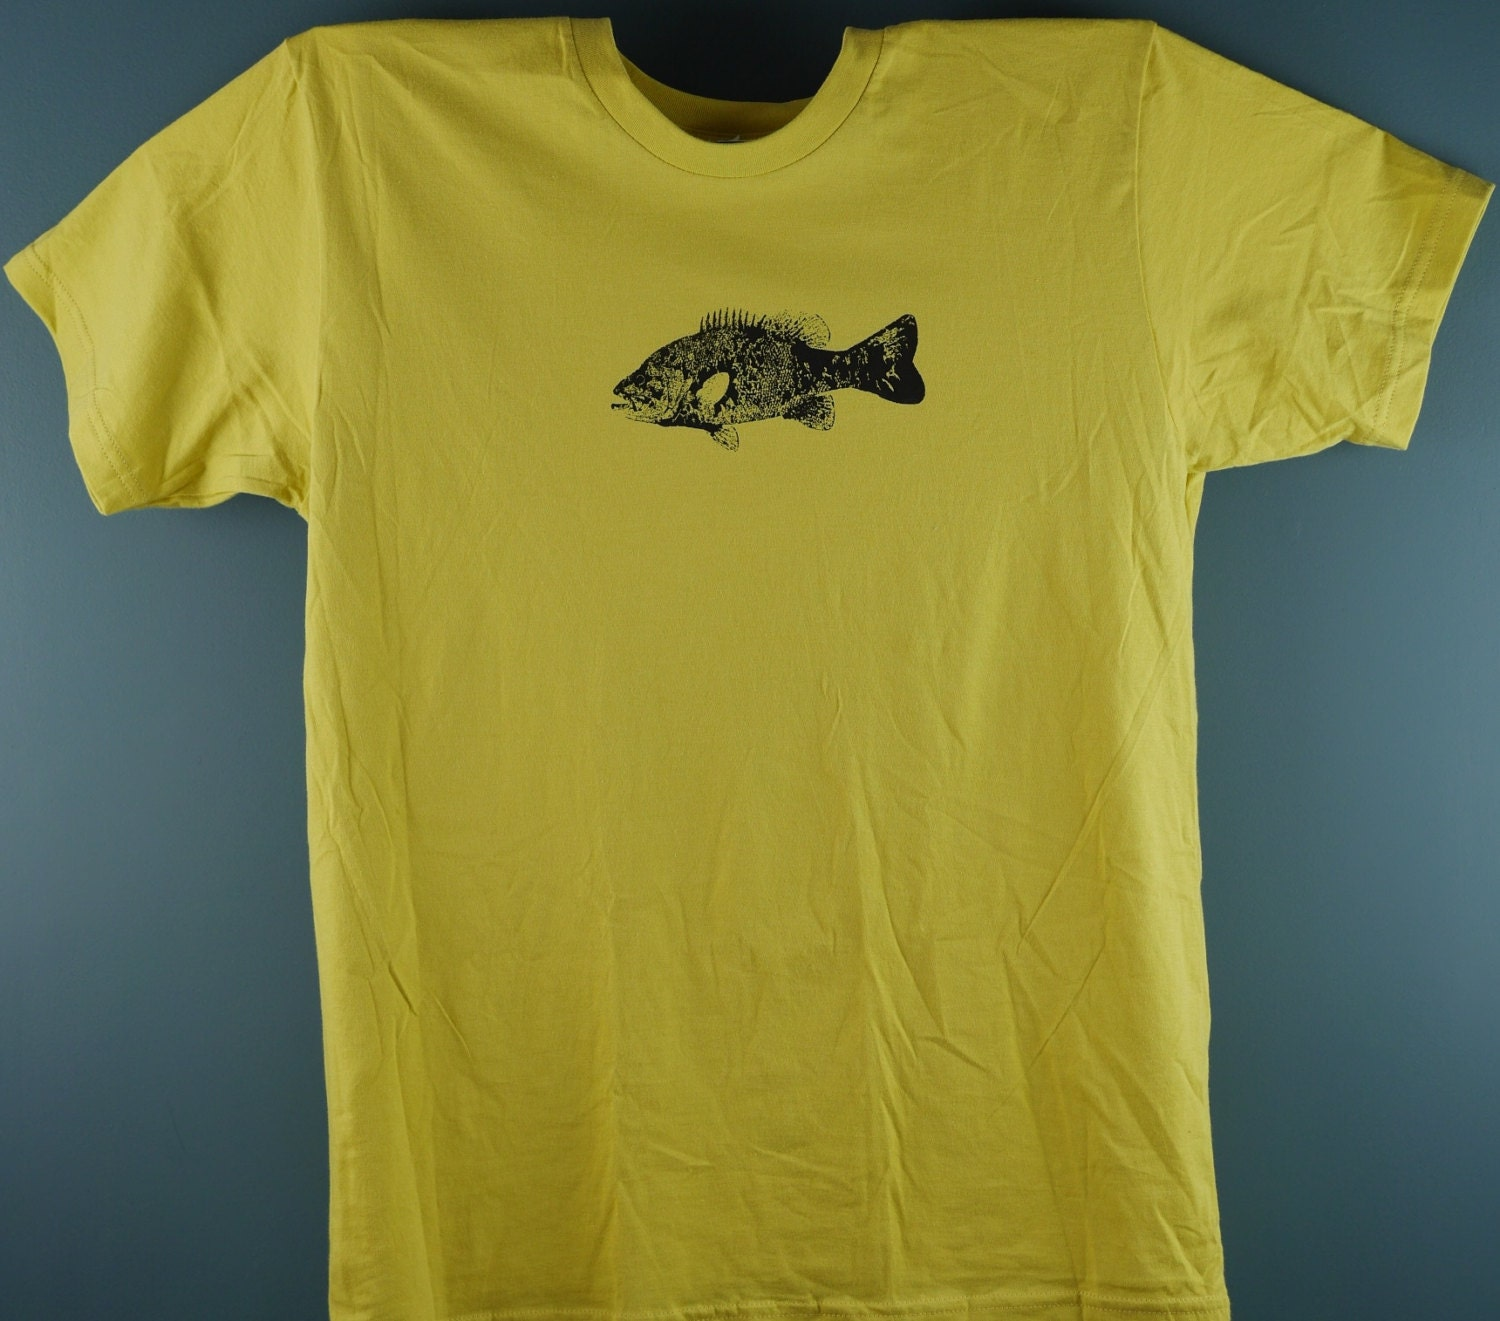 Fish Print T Shirt Unisex American Apparel Size Lage In